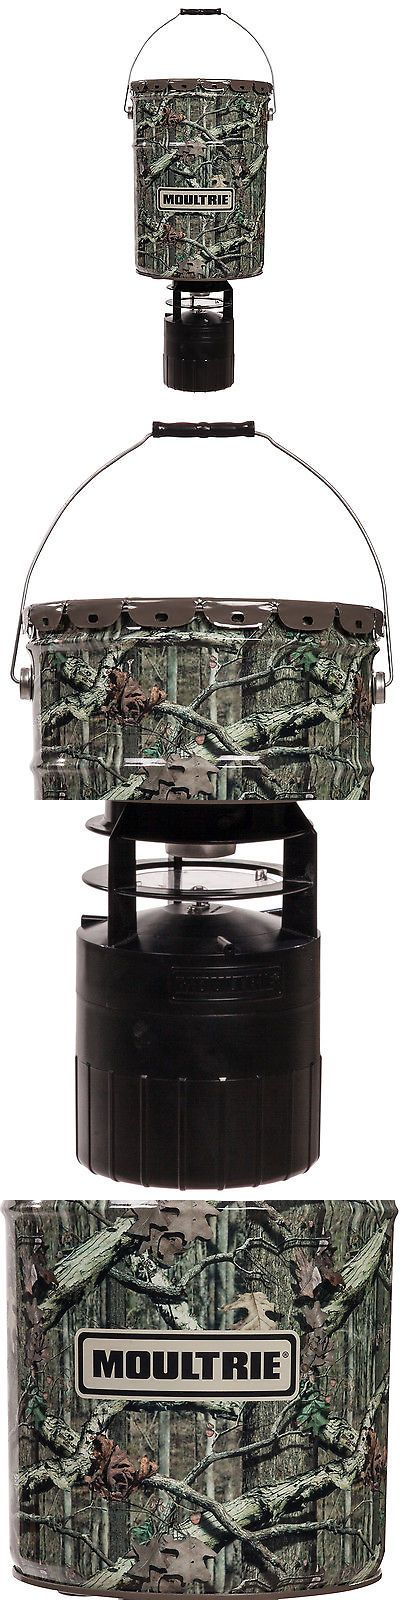 Game Feeders and Feed 52504: Moultrie 6.5 Gallon Econo Plus Hanging Deer Feeder With Photocell Timer | Mfh-Ep BUY IT NOW ONLY: $48.95